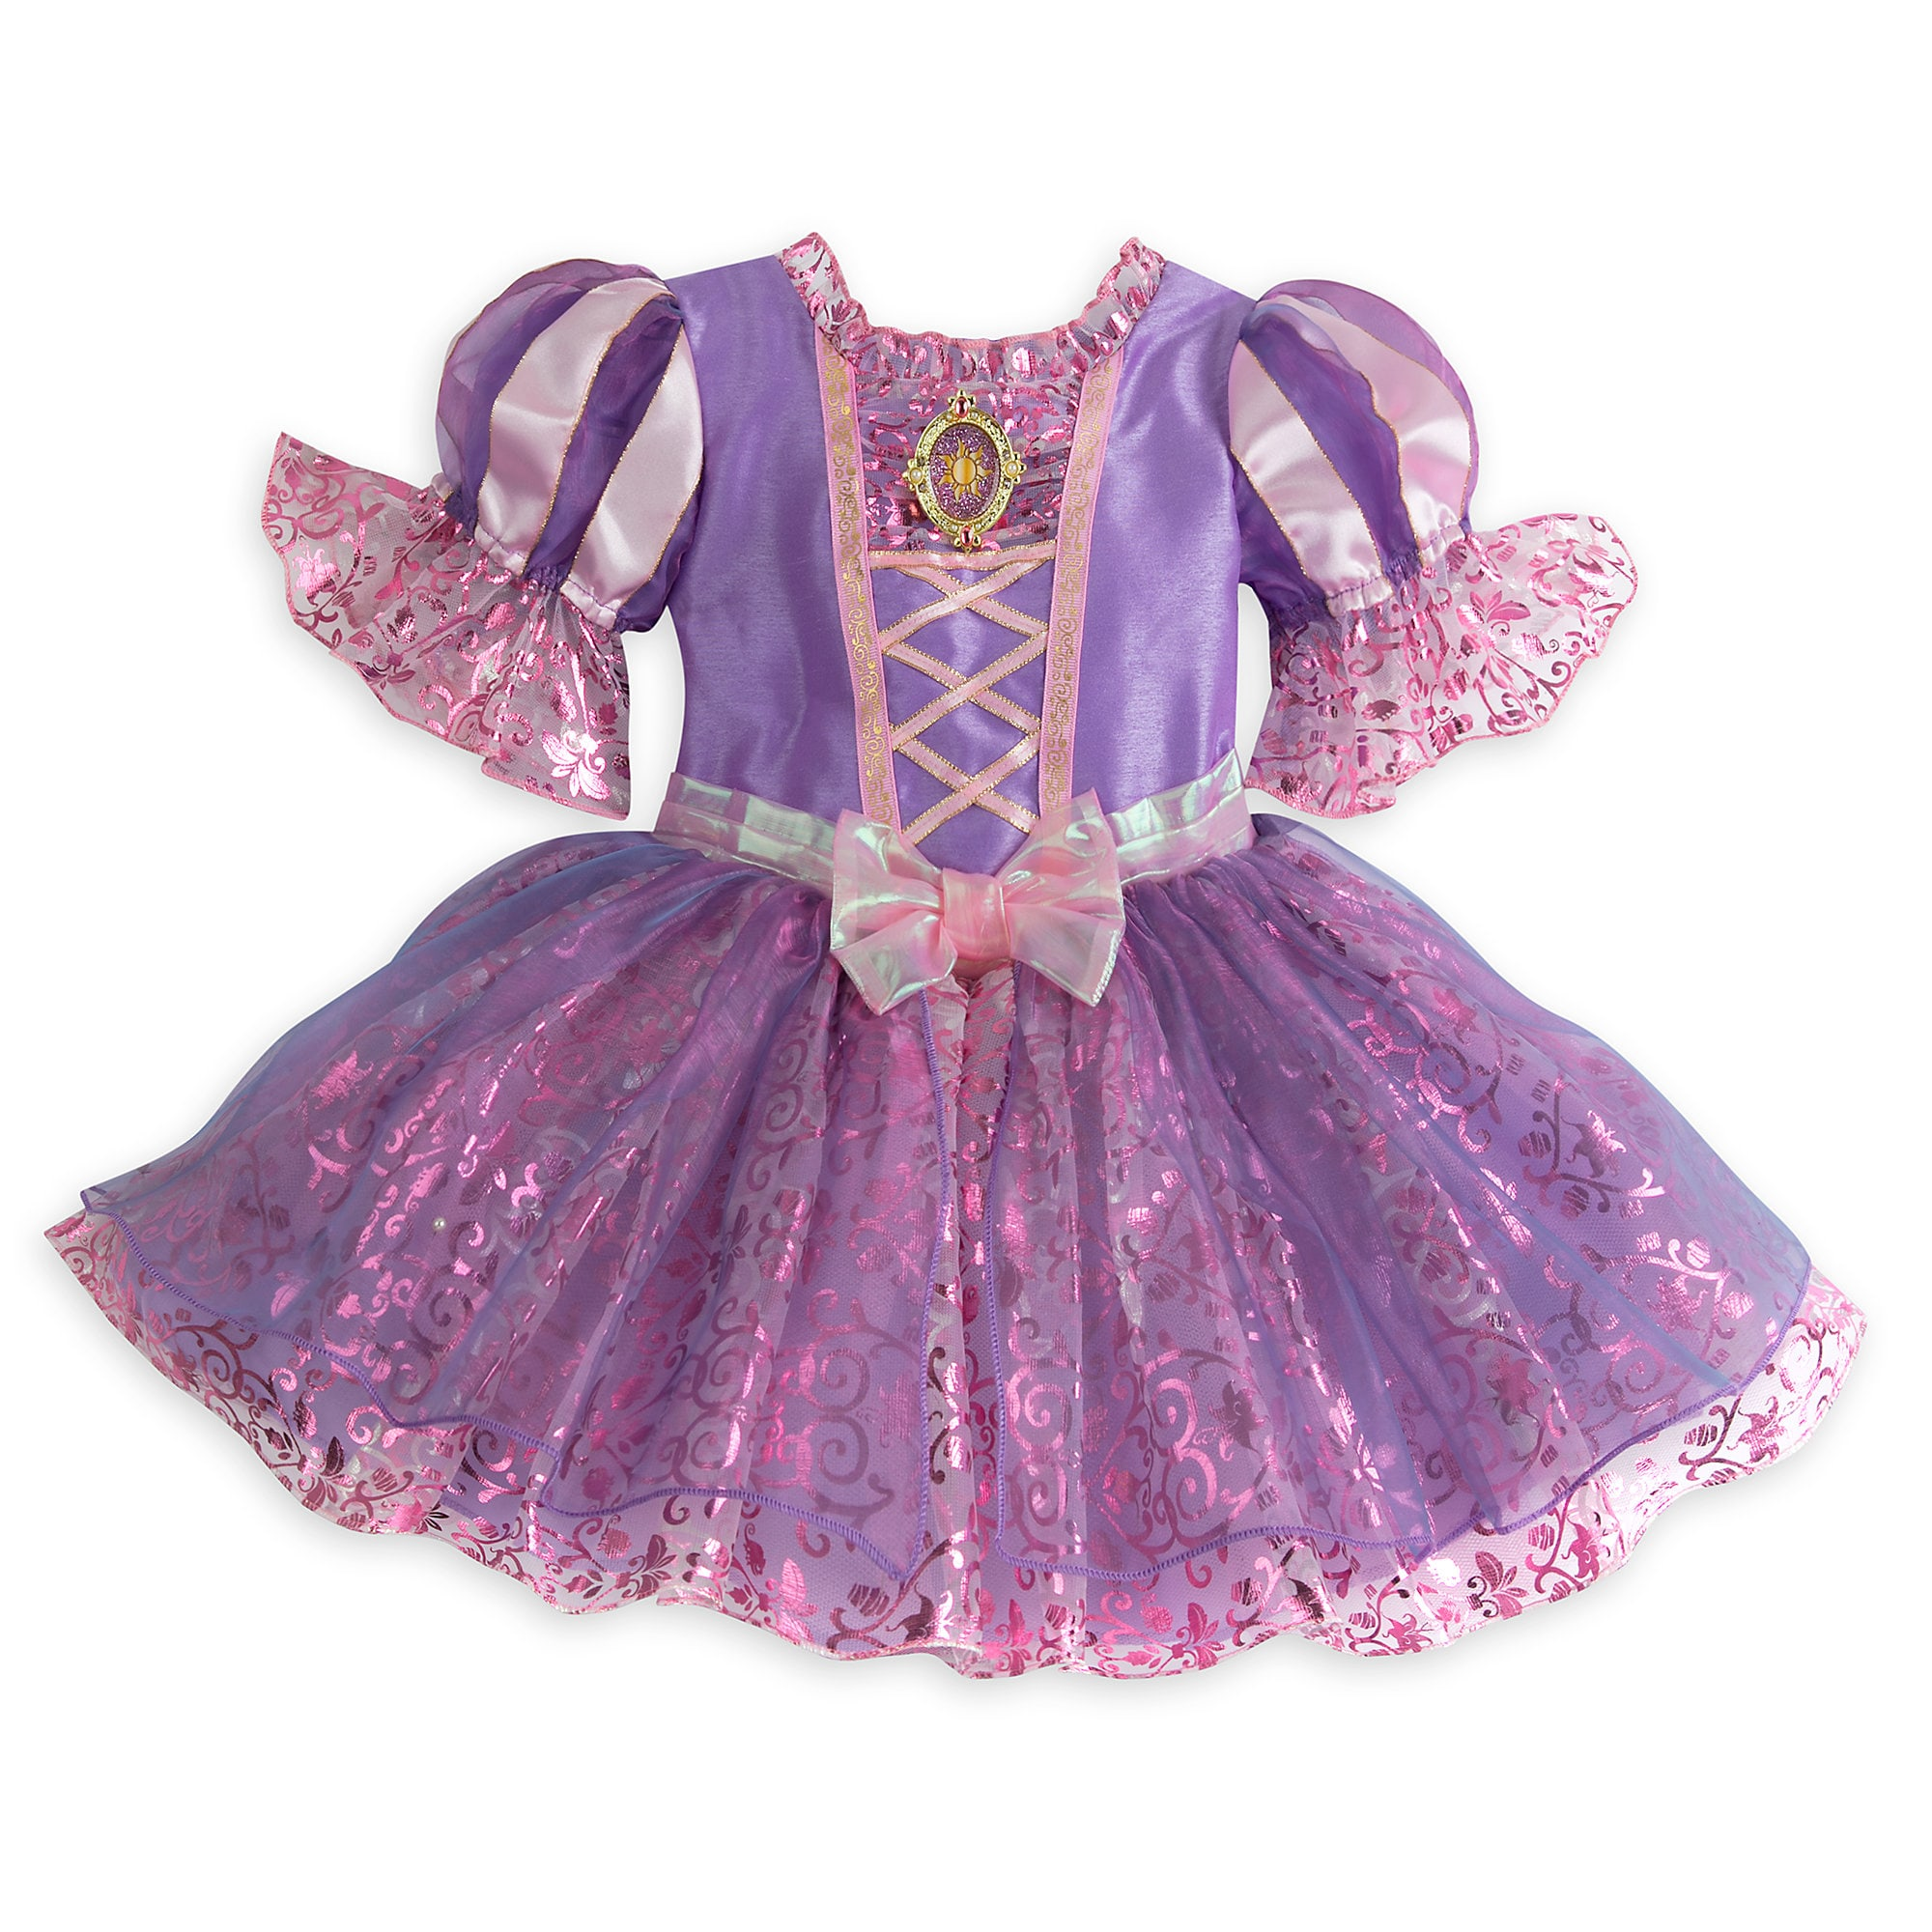 Rapunzel Costume for Baby